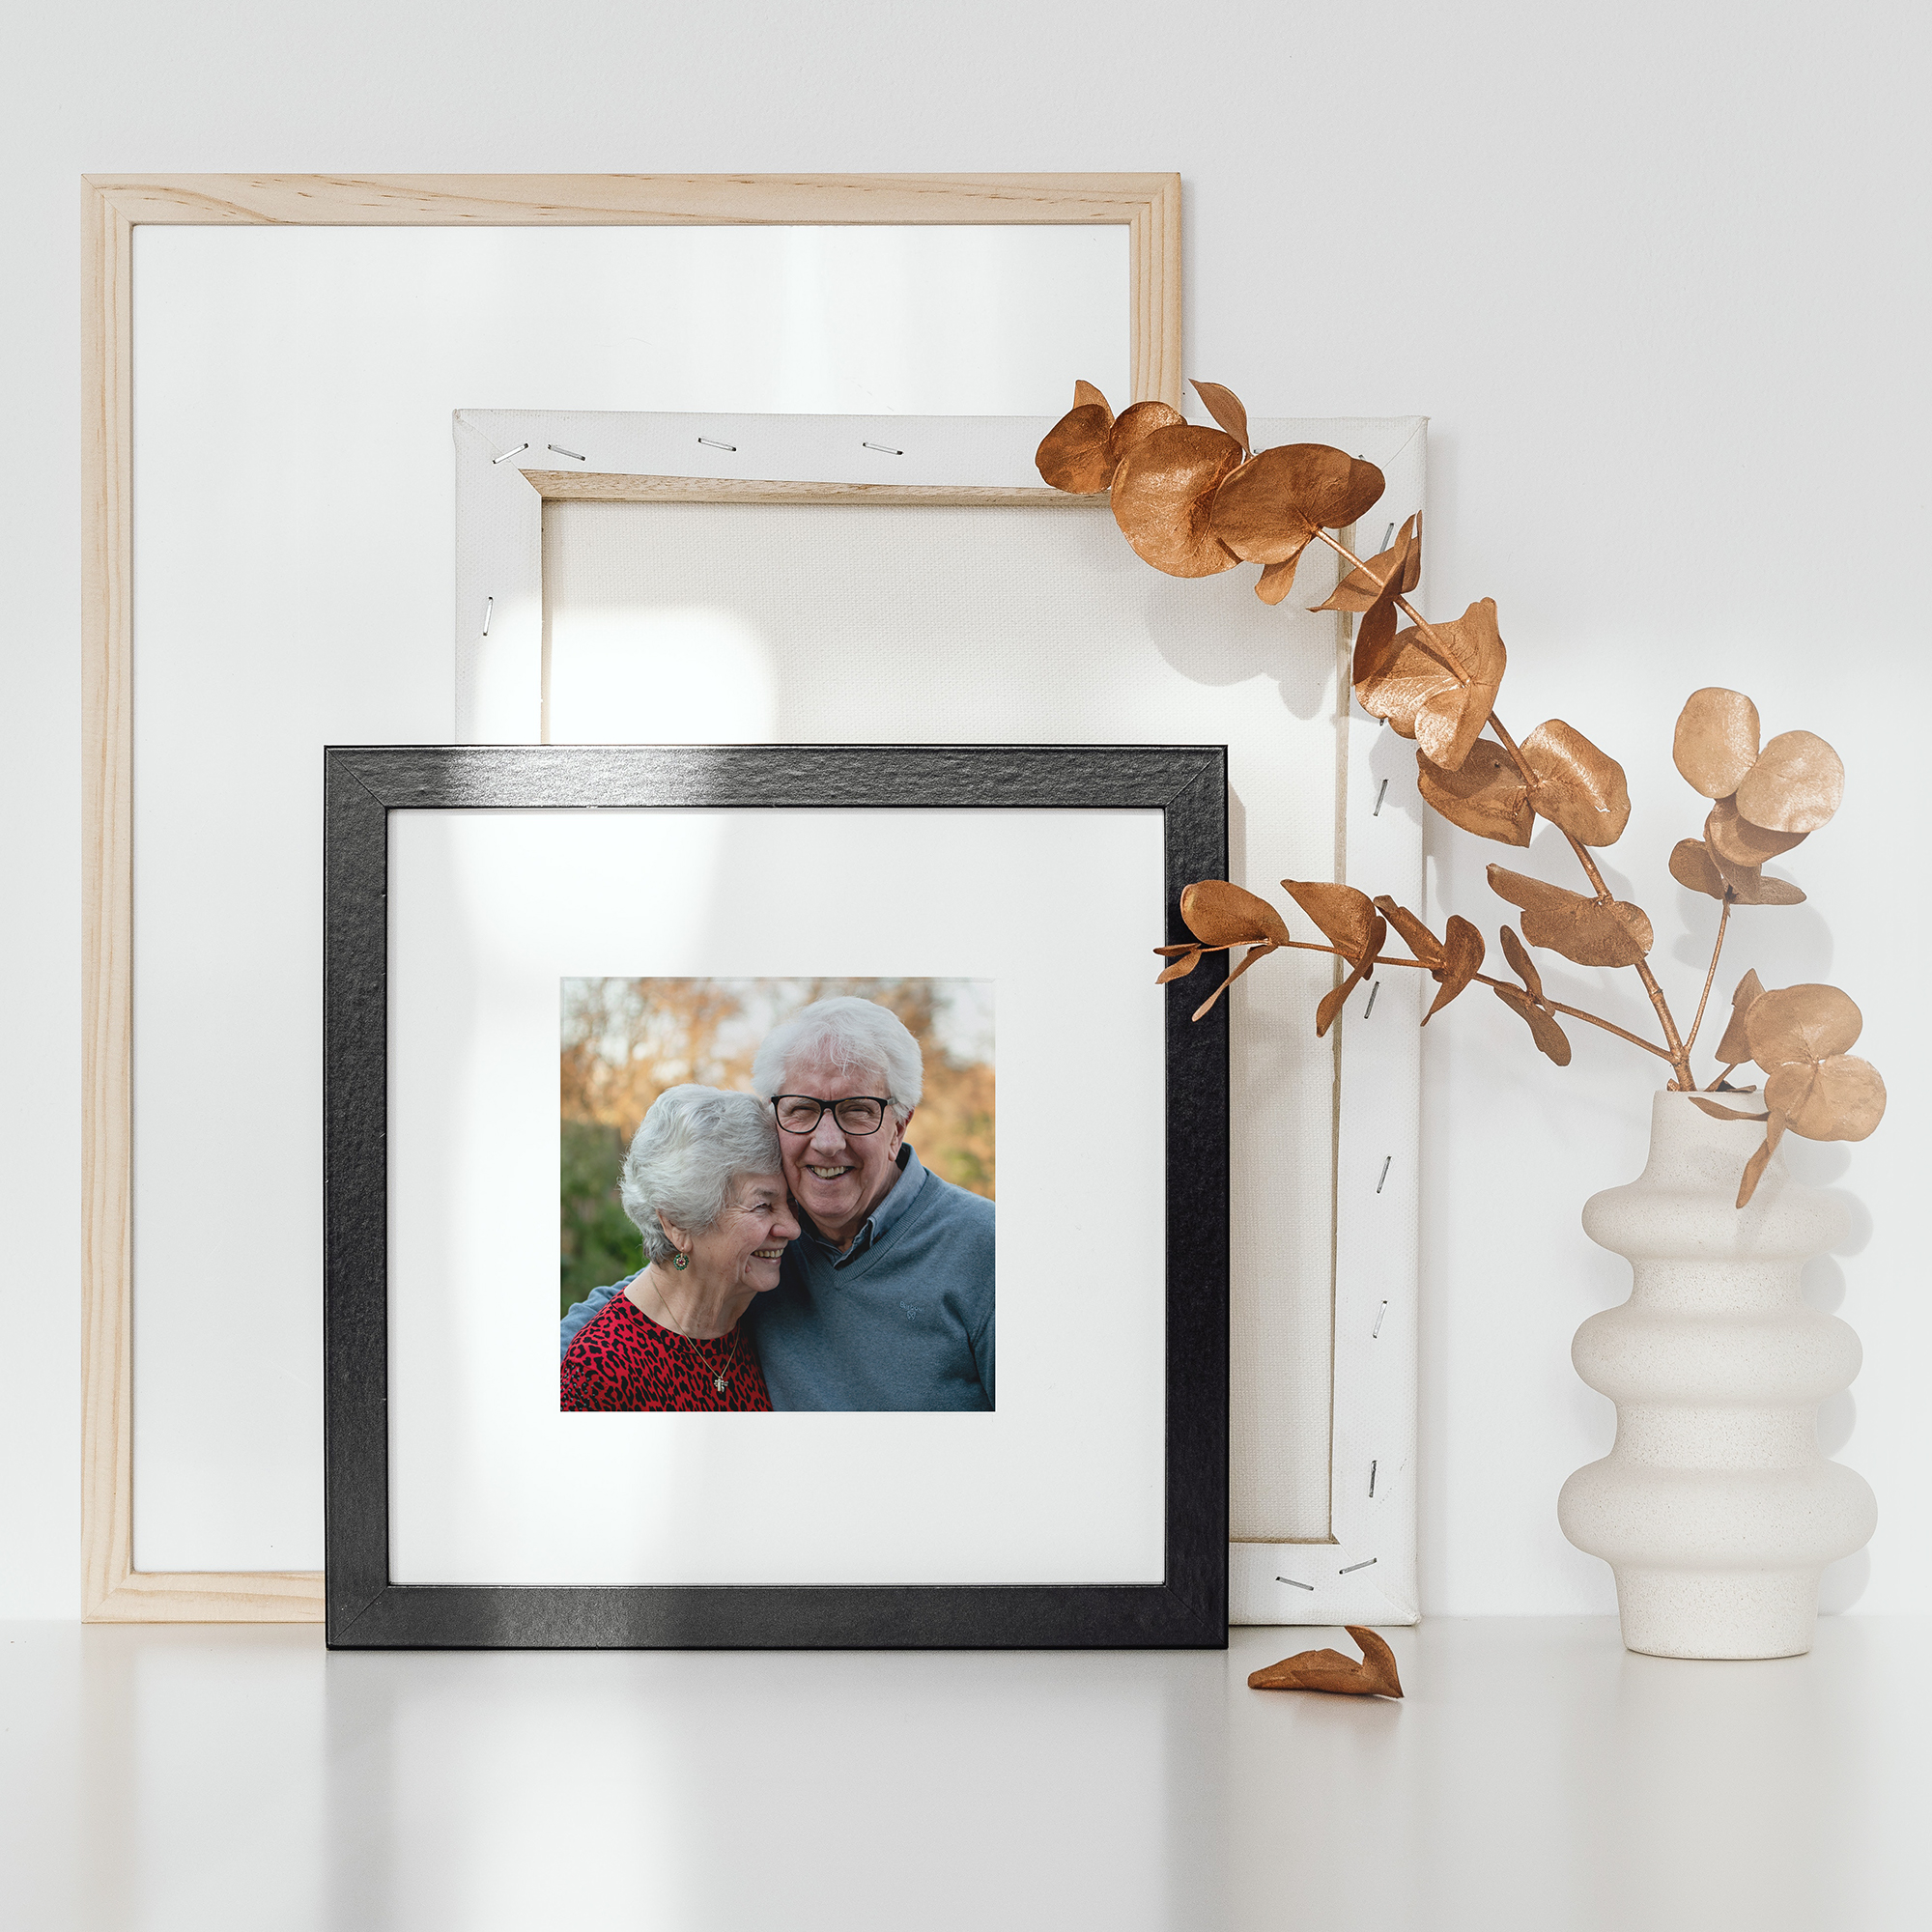 frames and a plant